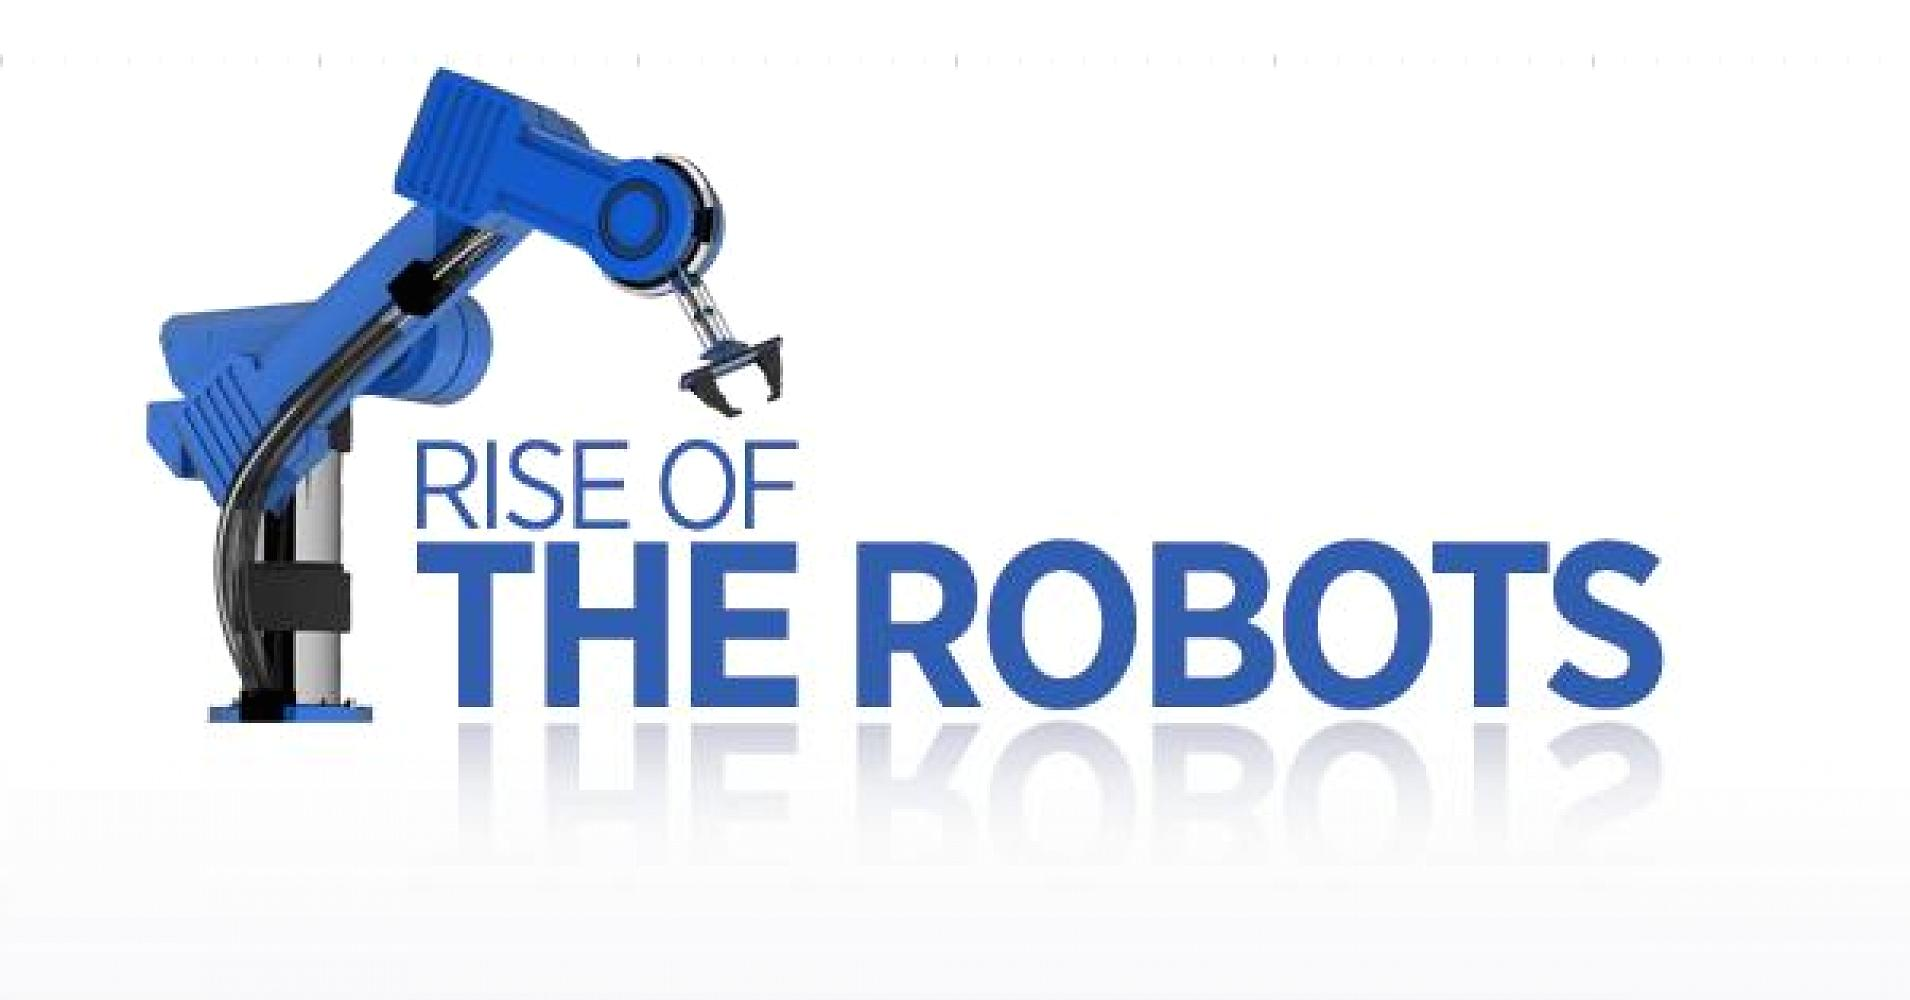 102538391-rise-of-the-robots-promo_1910x1000.jpg